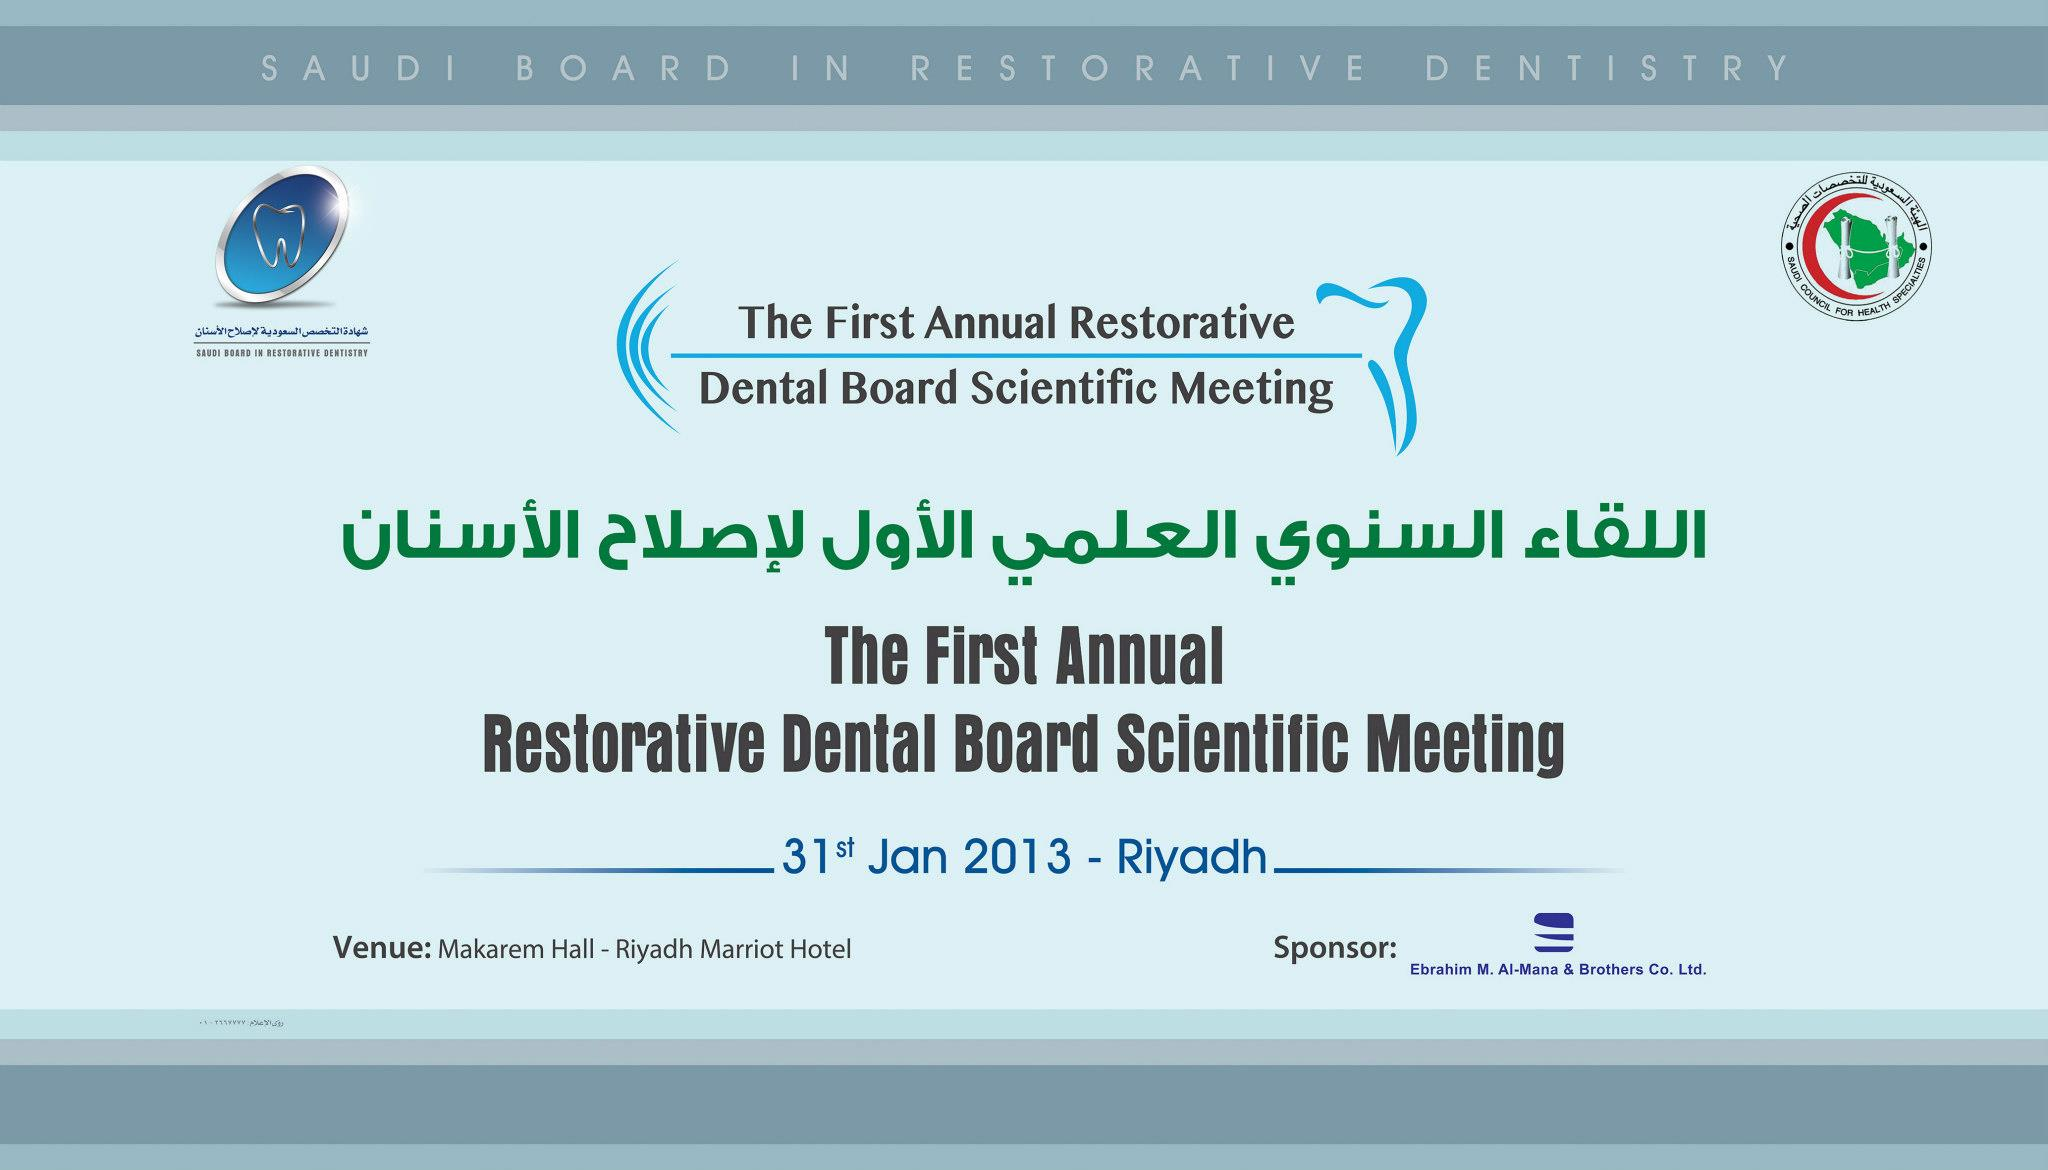 FIRST ANNUAL SAUDI BOARD IN RESTORATIVE DENTISTRY SCIENTIFIC MEETING